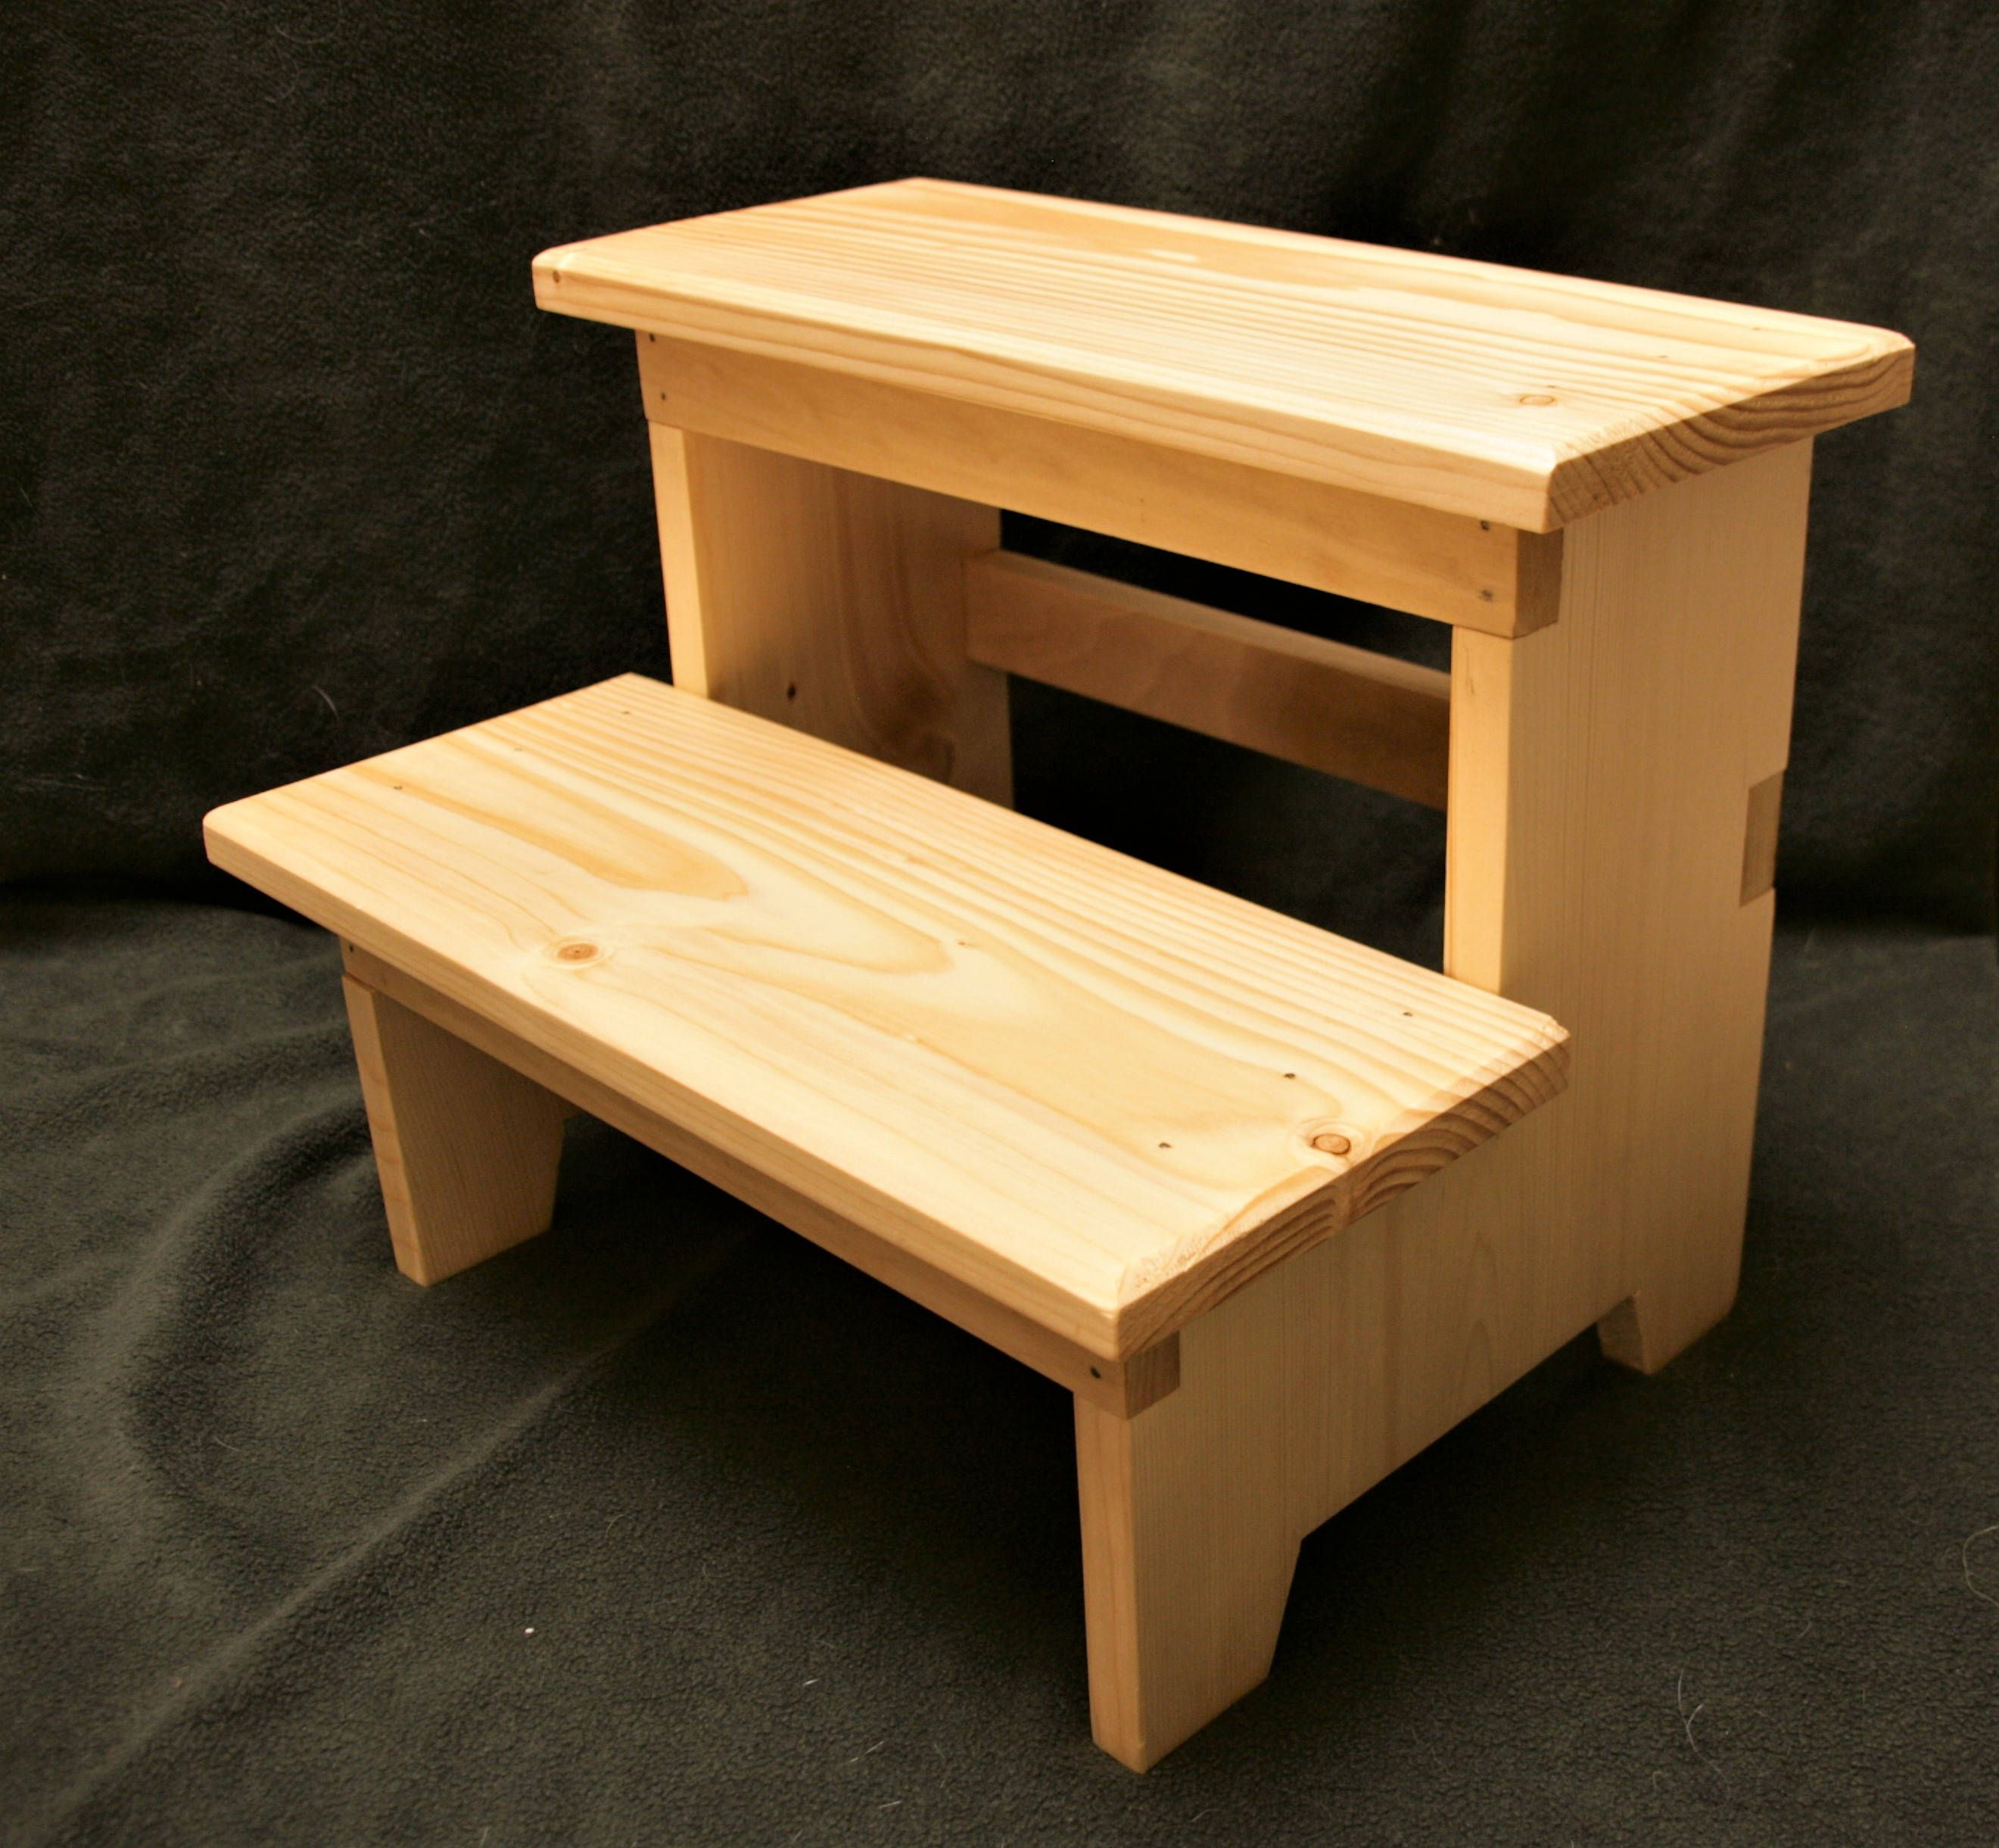 Wood Step Stool Sturdy Step Stool Kids Step Stool